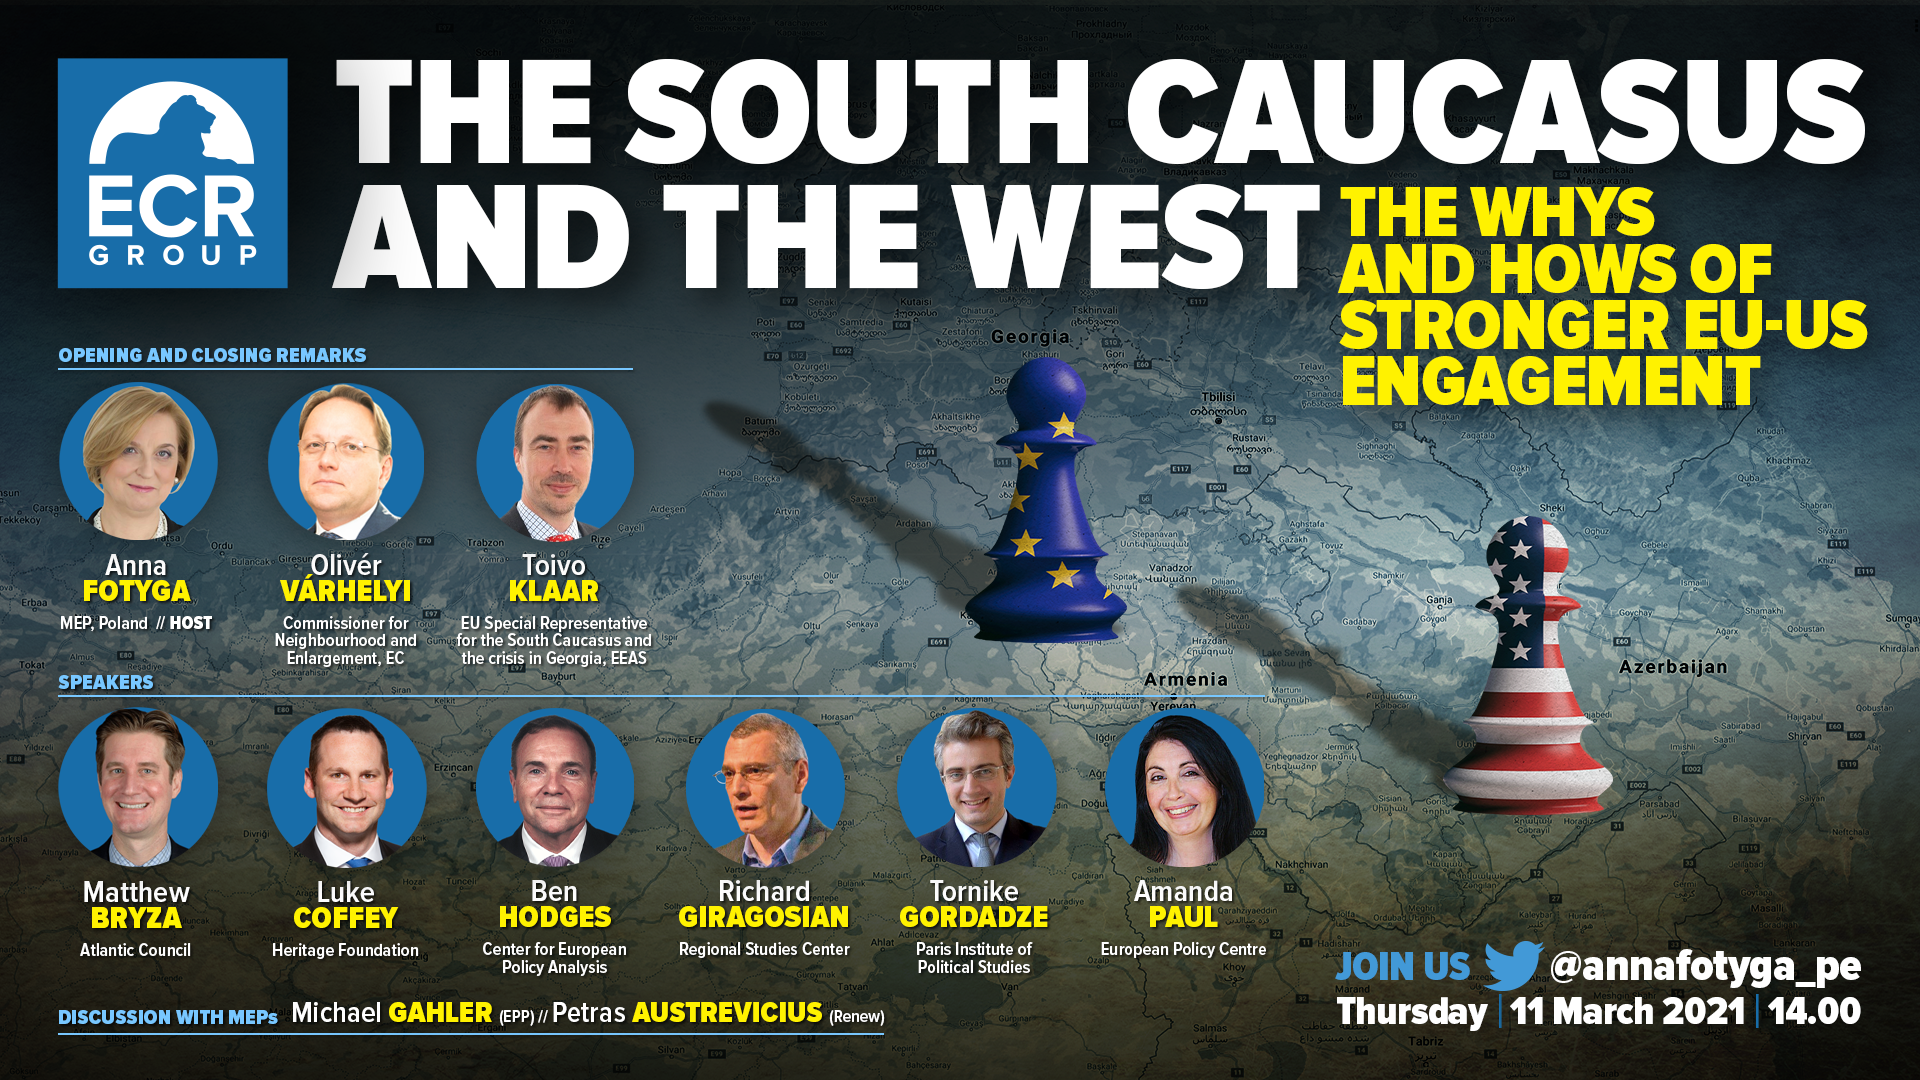 The South Caucasus and the West